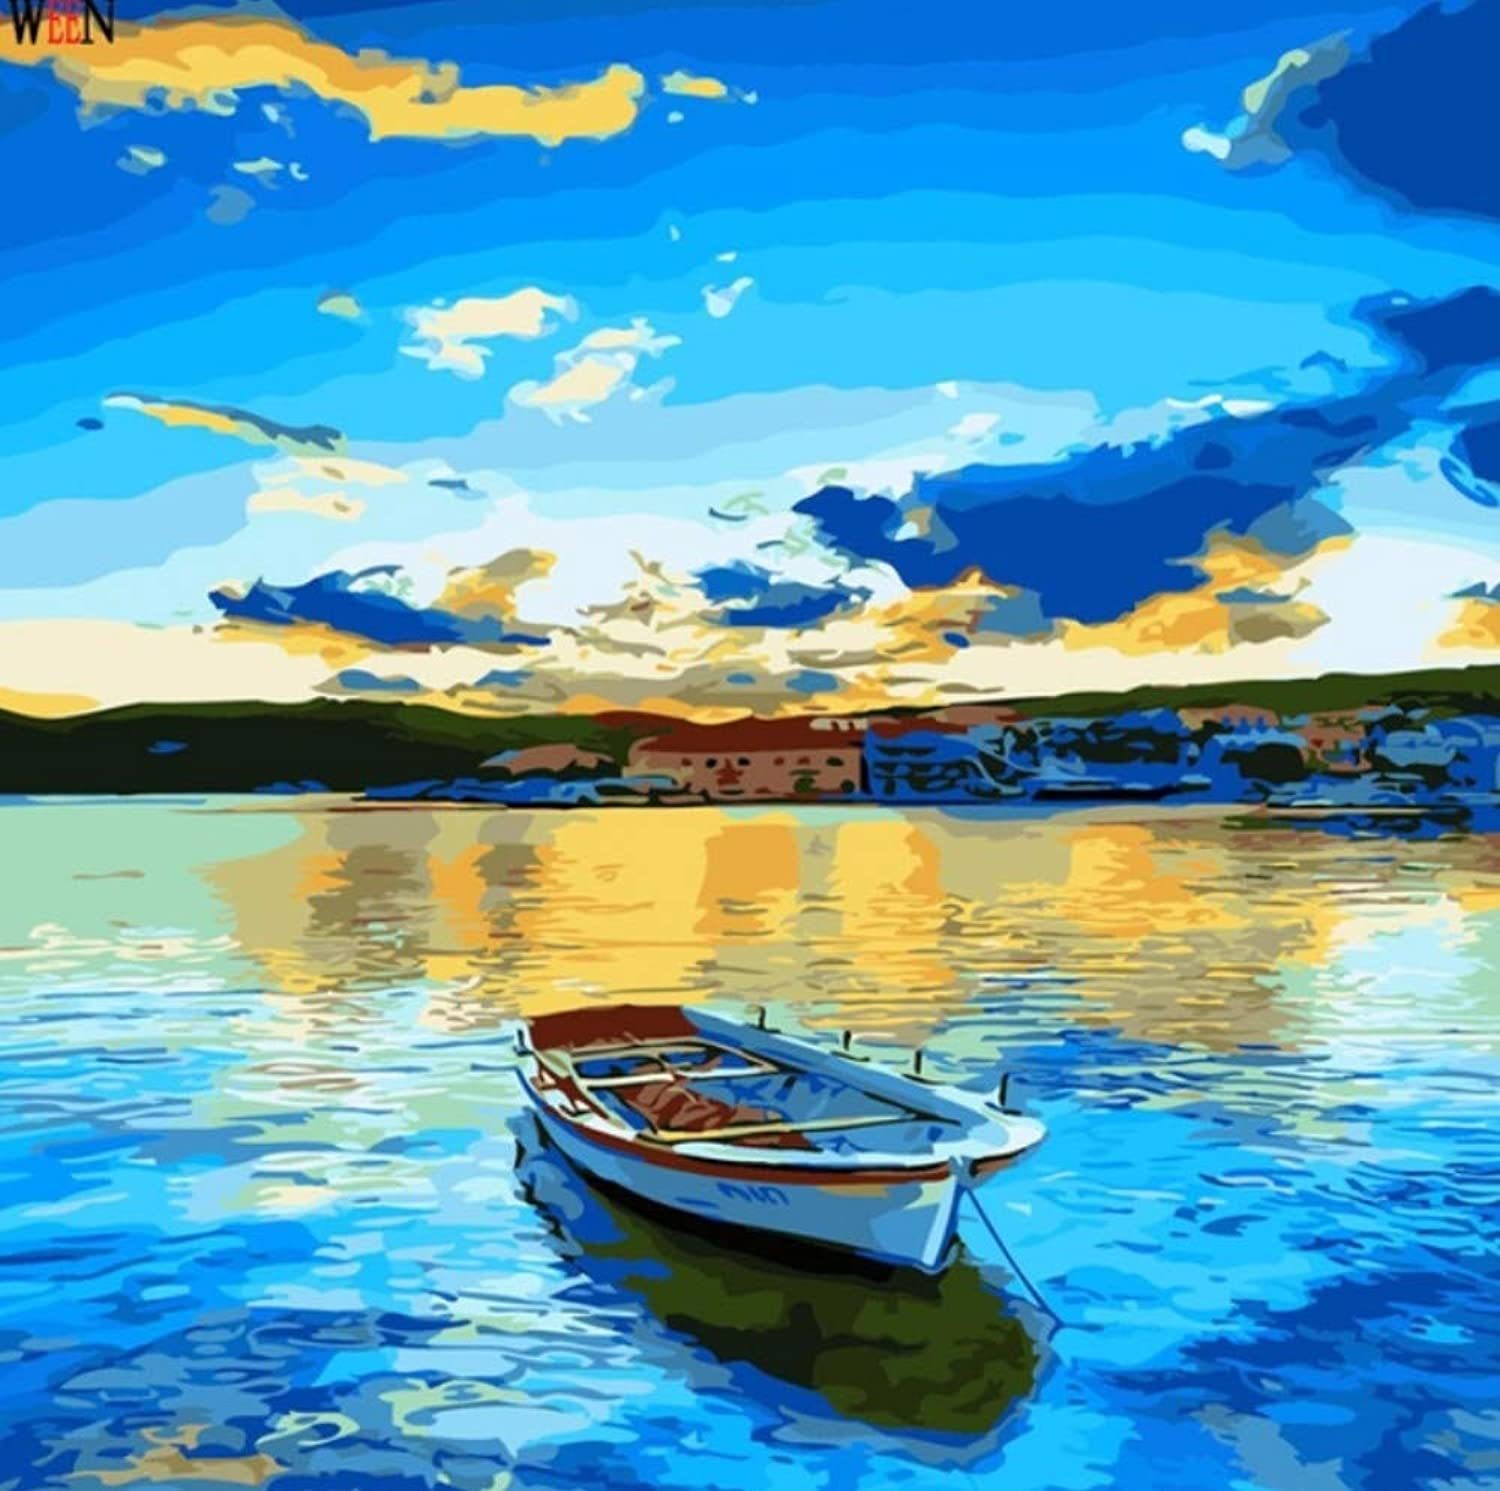 LIWEIXKY Lake Side Boat Oli Painting coloring By Numbers On Canvas Diy Hand Painted Abstract Oil Painting Gift, Framed, 50x60cm